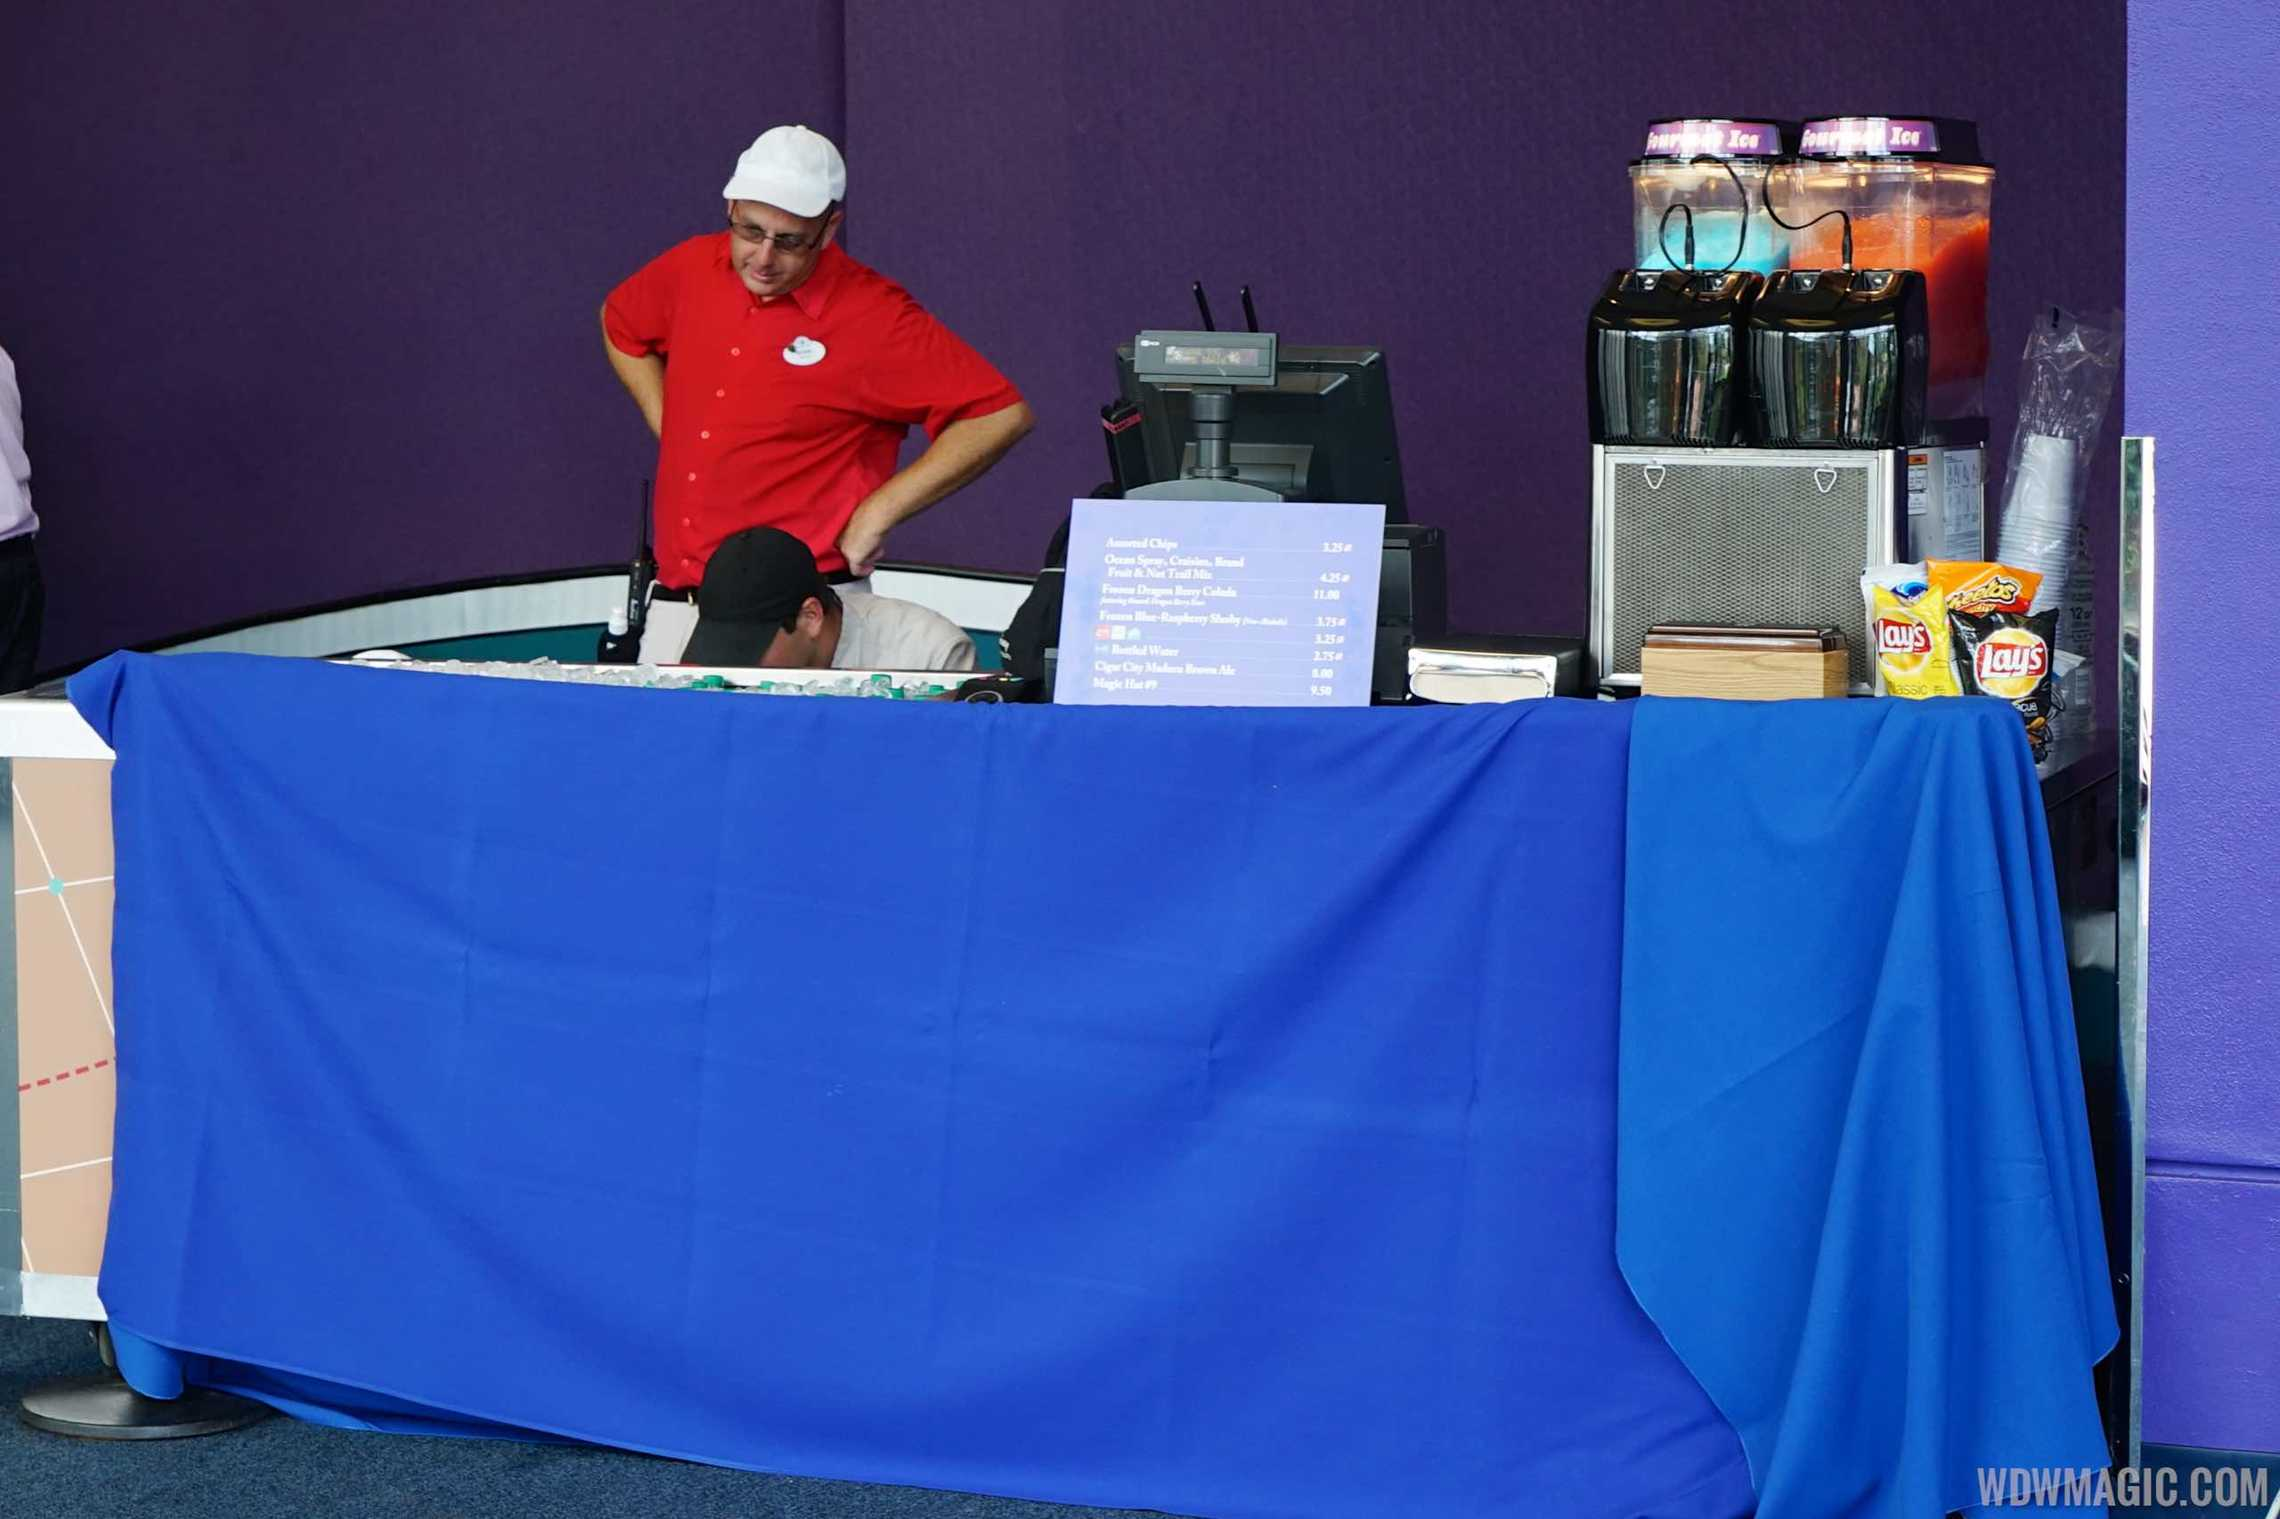 Innoventions D-Zone food and drink kiosk